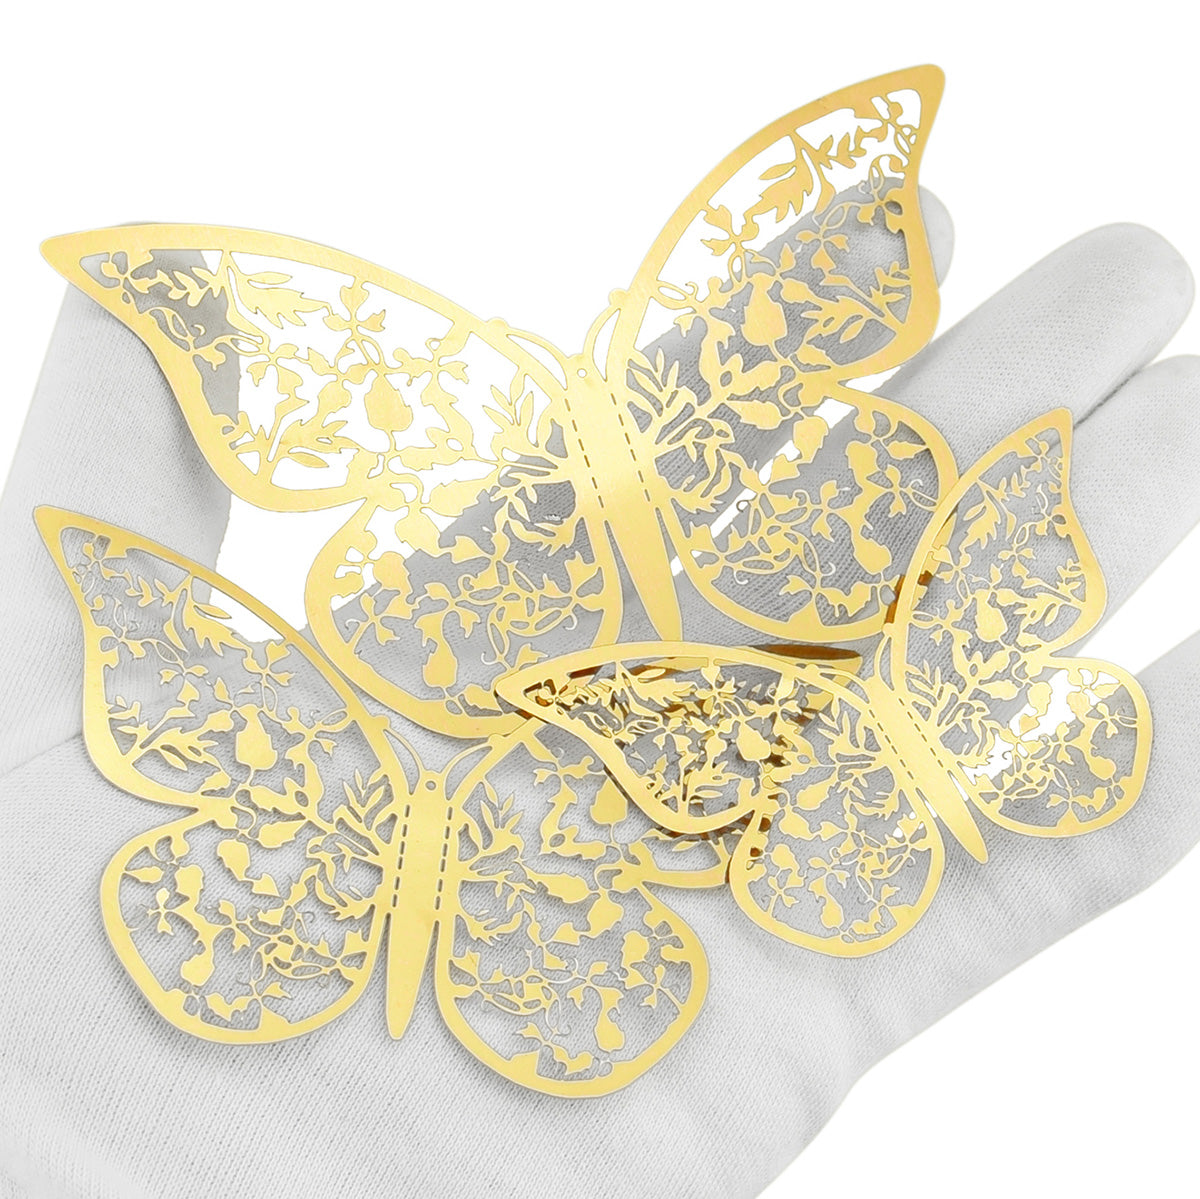 Gold Butterflies Wall Decorations Set - Floral & Leaves Hollow Design